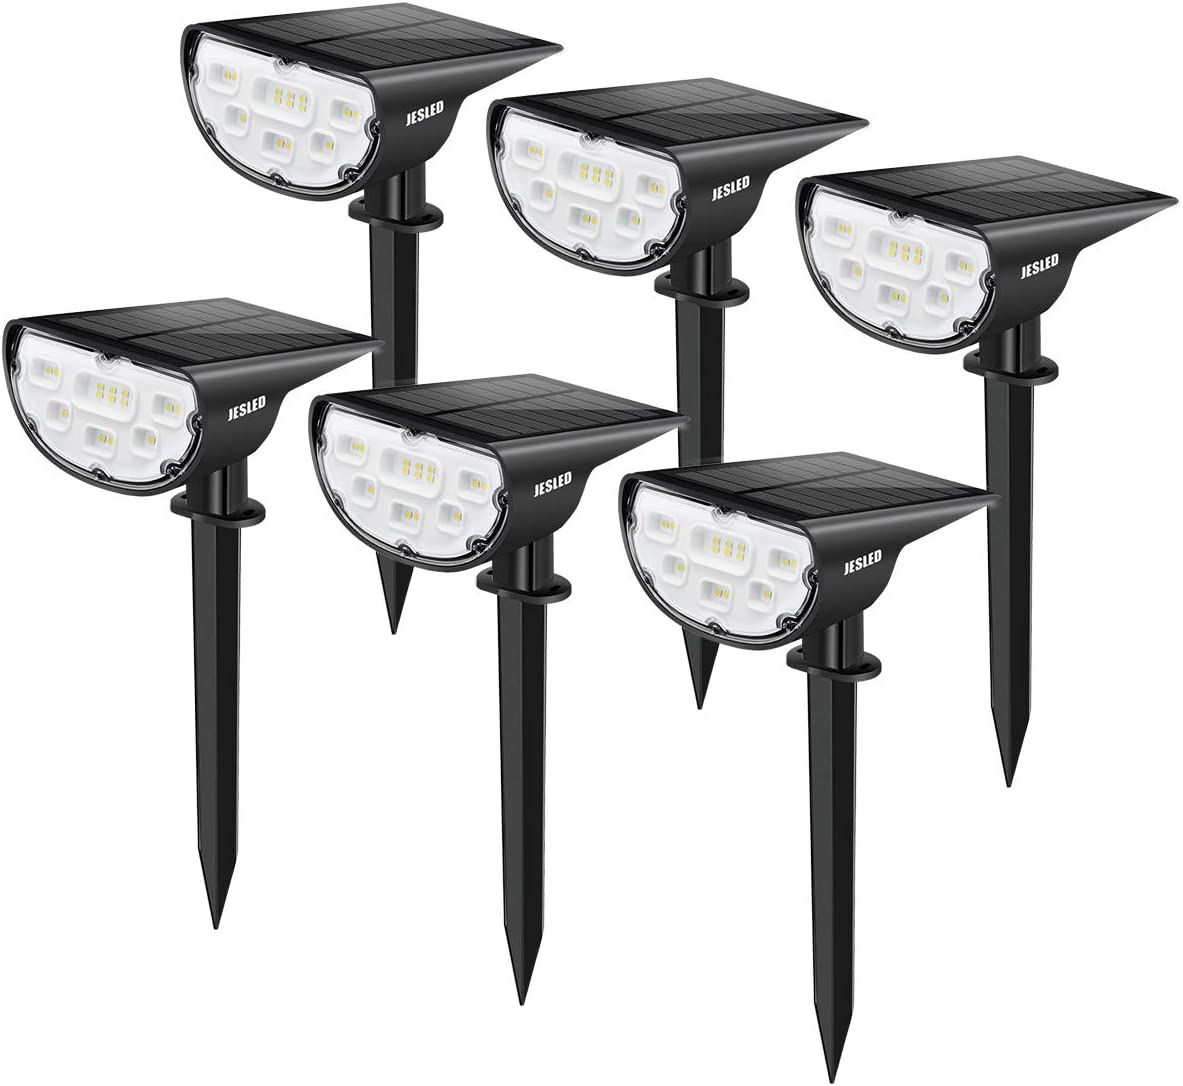 JESLED Ranking TOP13 At the price 14 LED Landscape Spotlights Outdoor L Spot Powered Solar